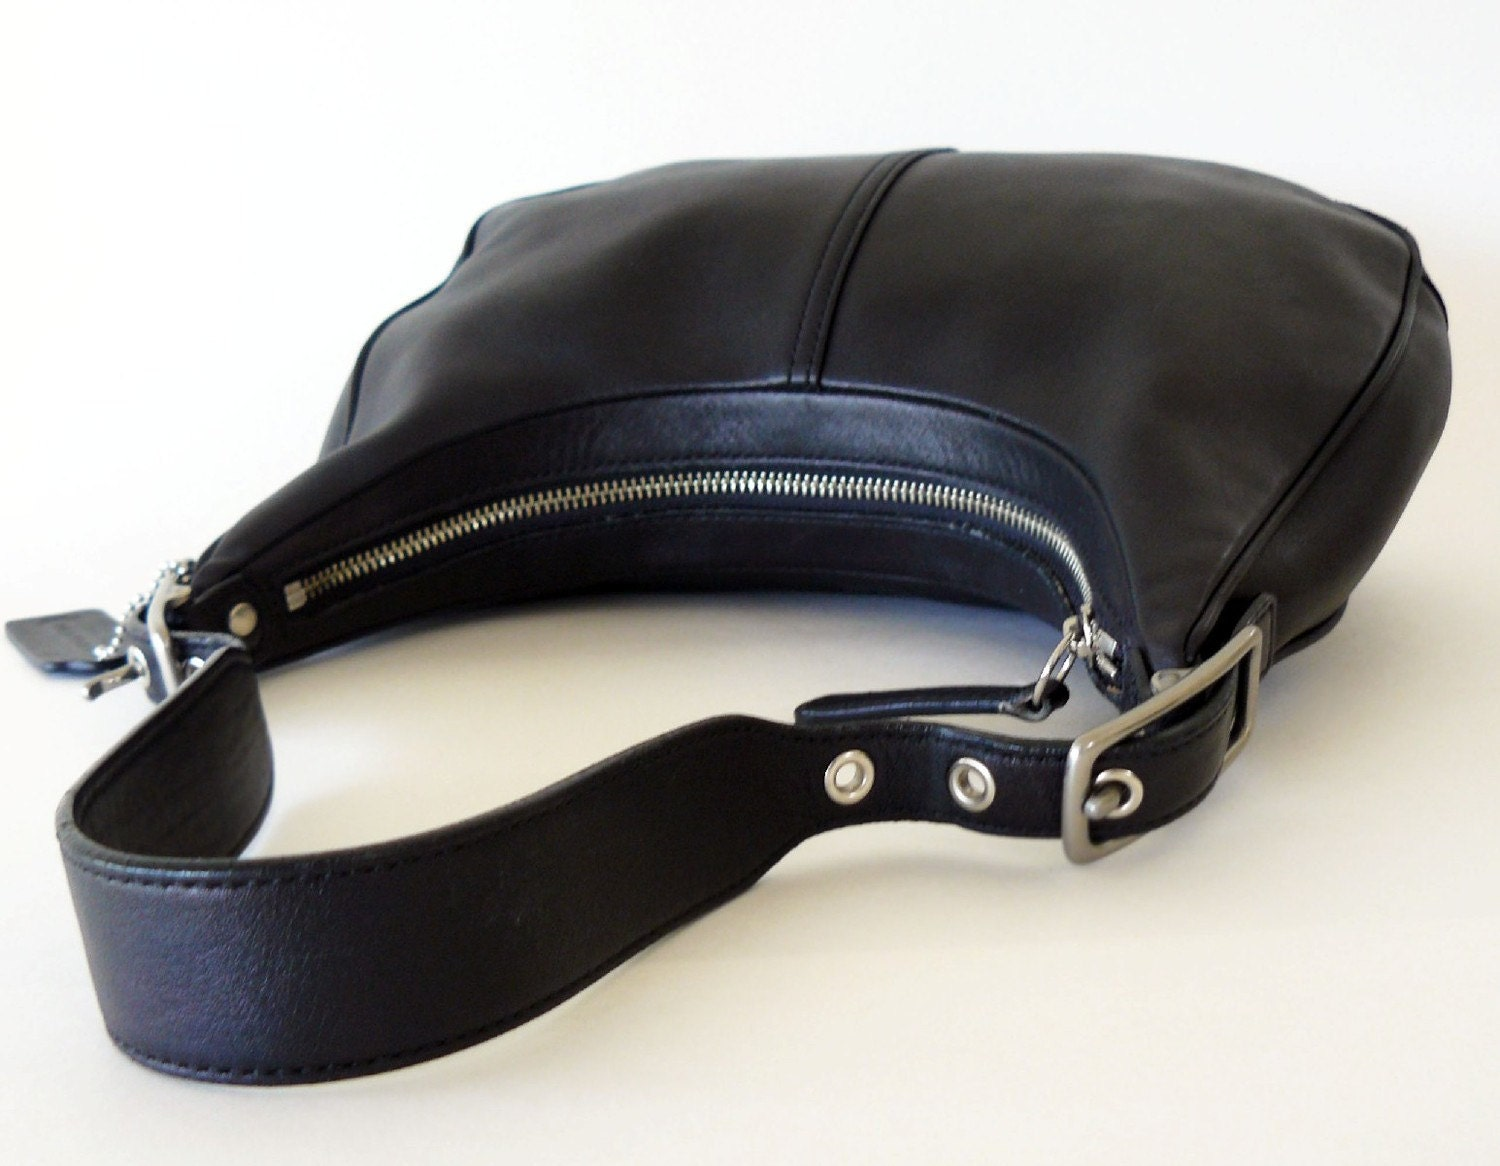 67d33f087b08 Coach Black Leather Hobo Purse | Stanford Center for Opportunity ...